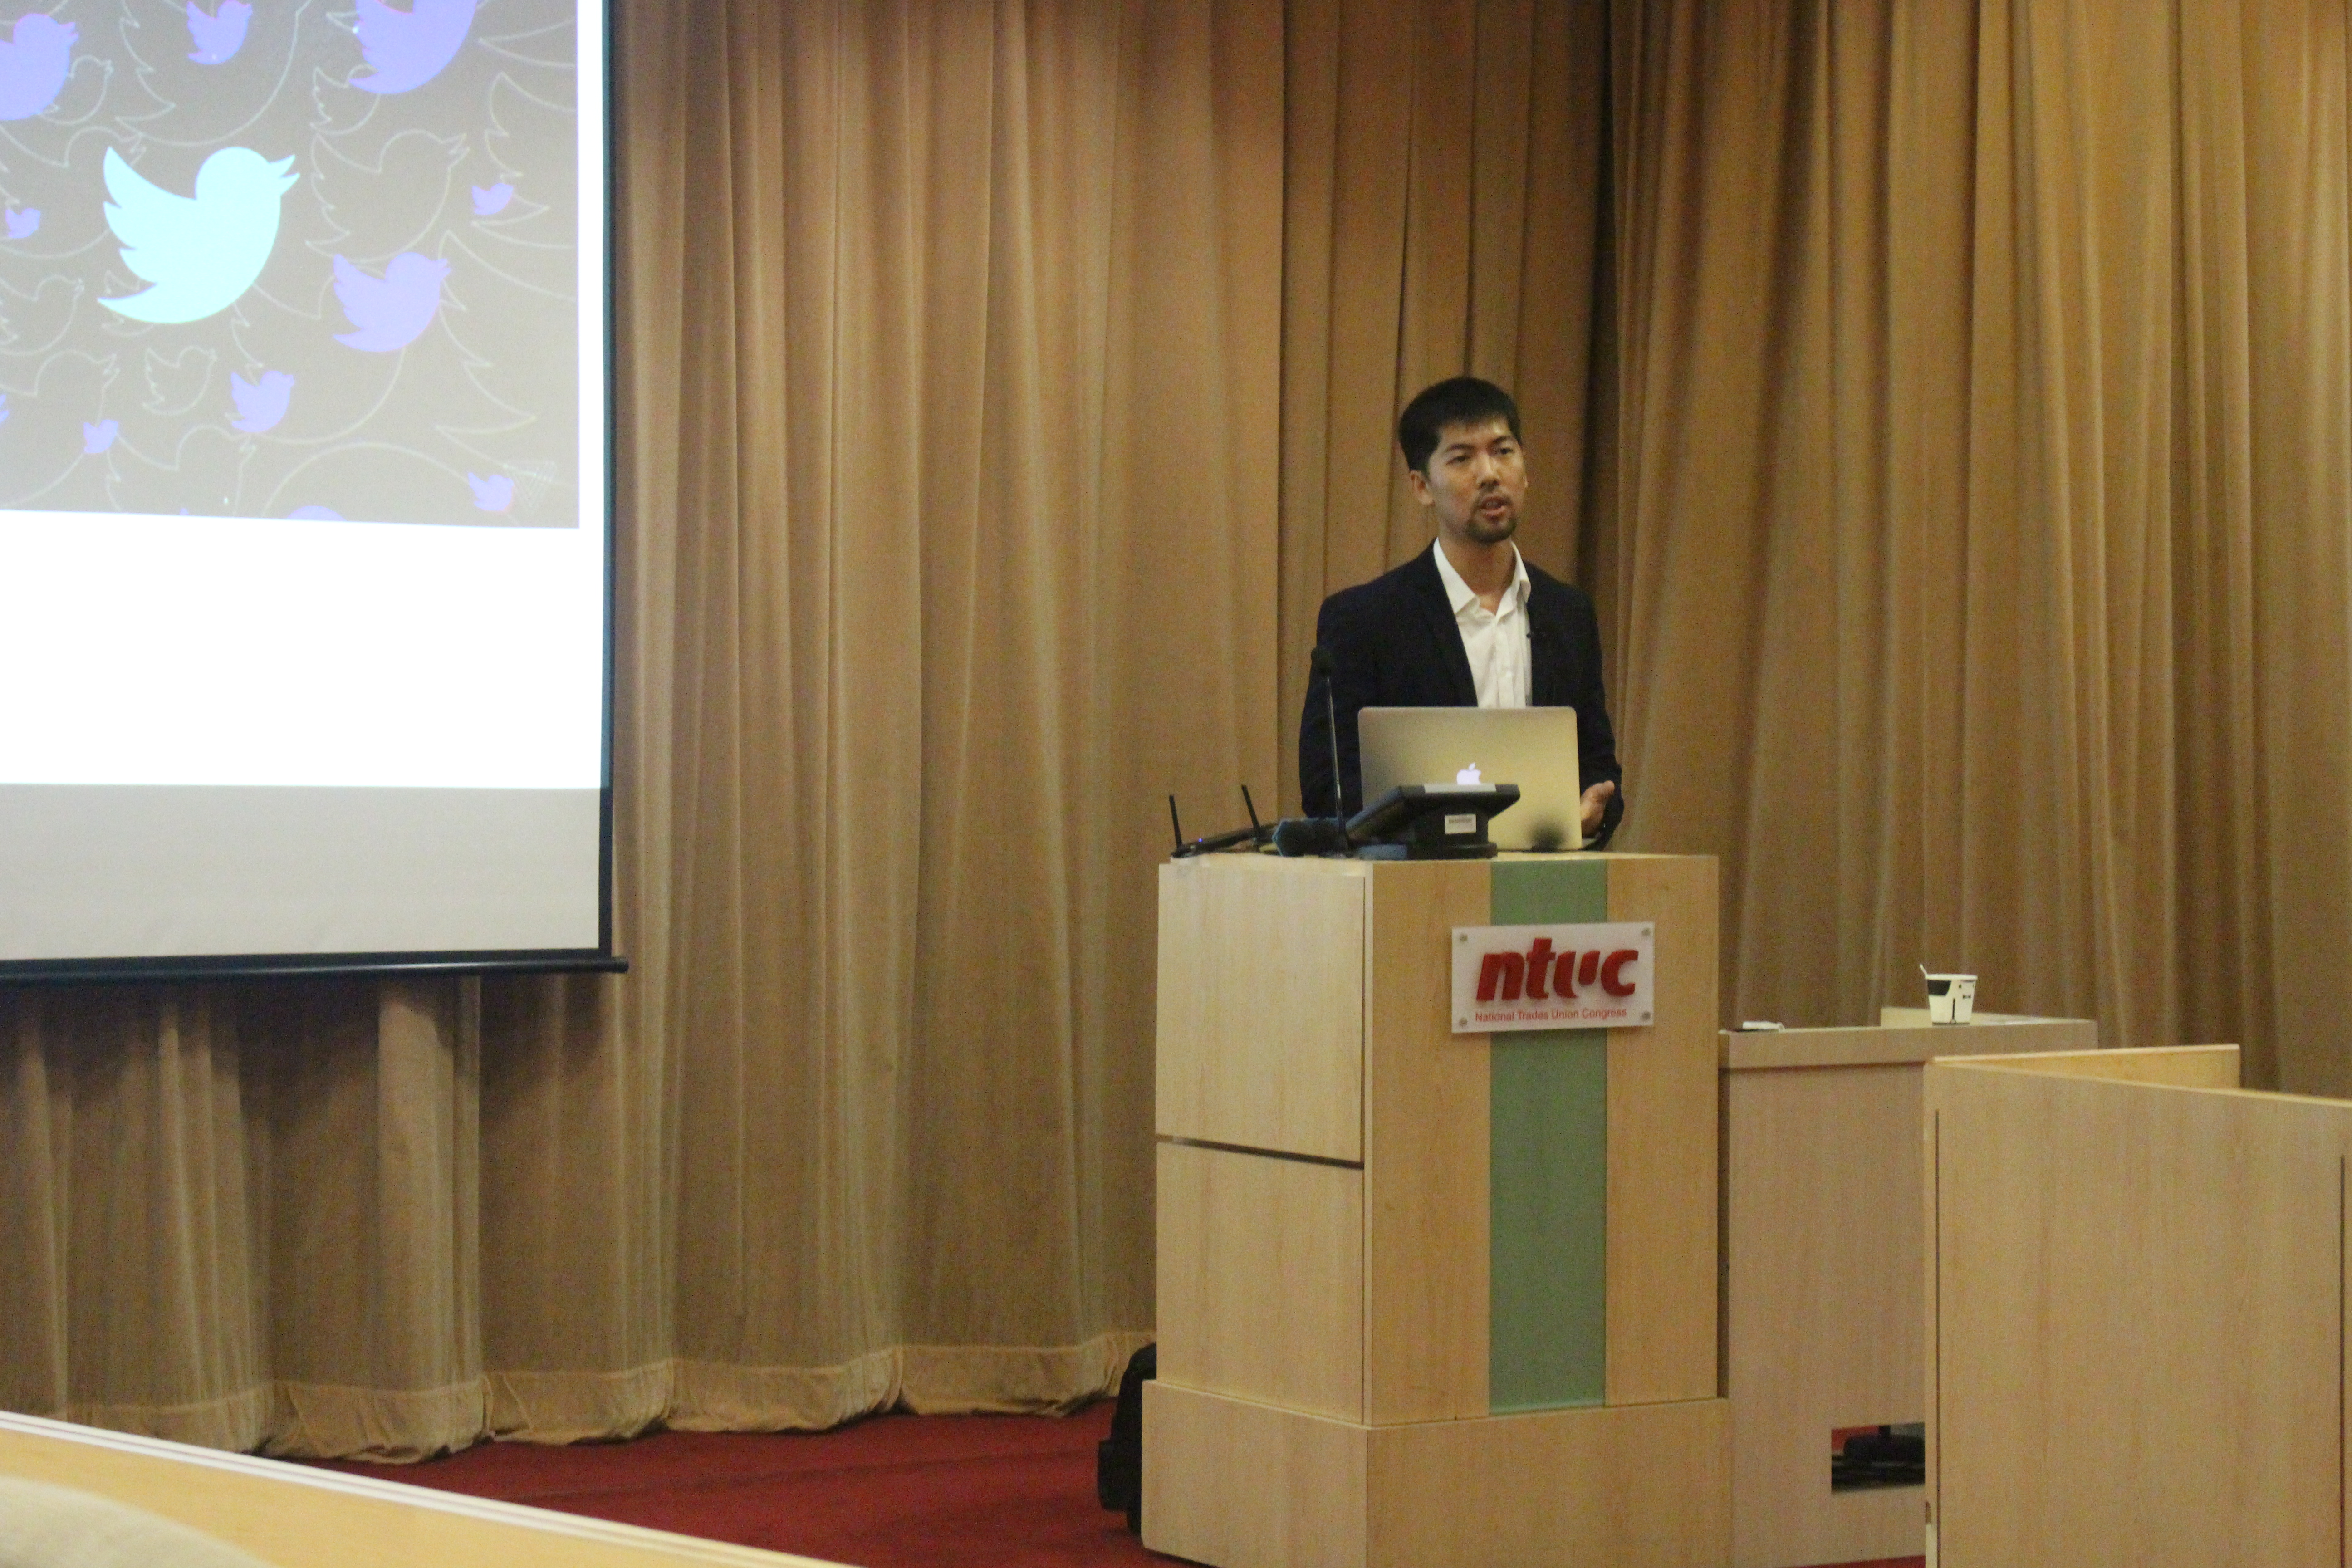 Featured speaker and cybersecurity specialist Loi Liang Yang gives his presentation.